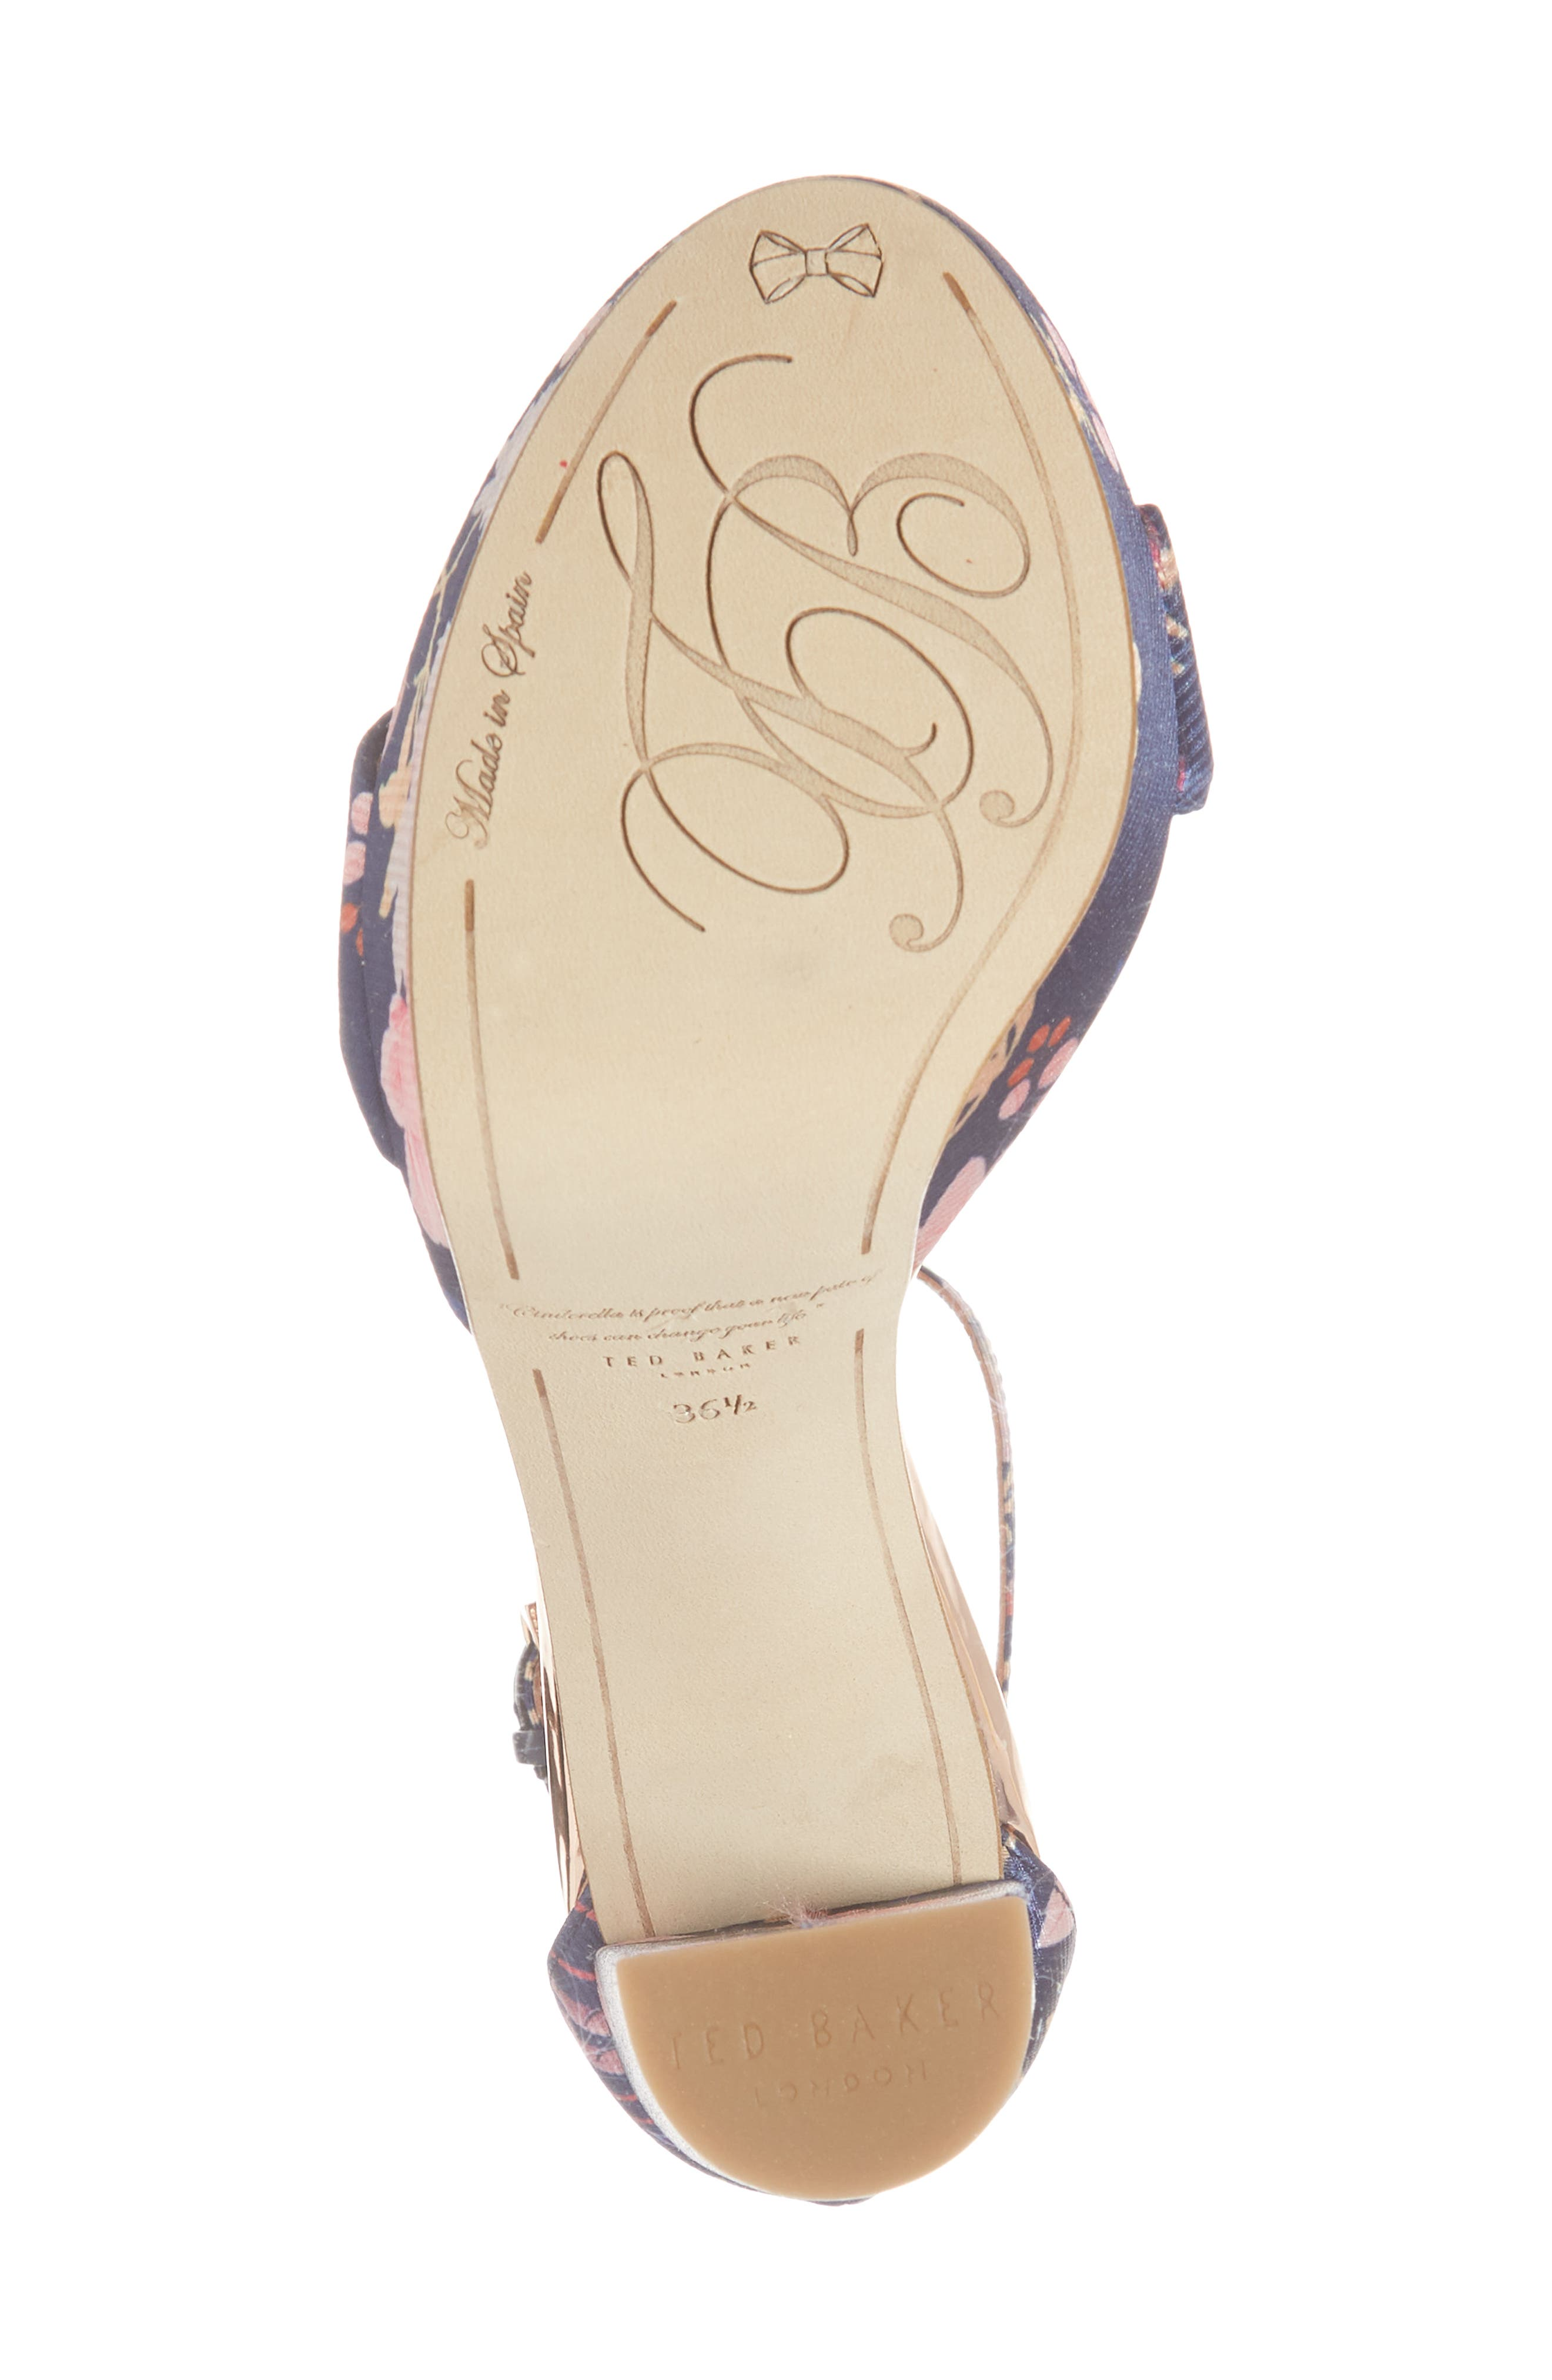 Junaa Sandal,                             Alternate thumbnail 6, color,                             Navy Fabric